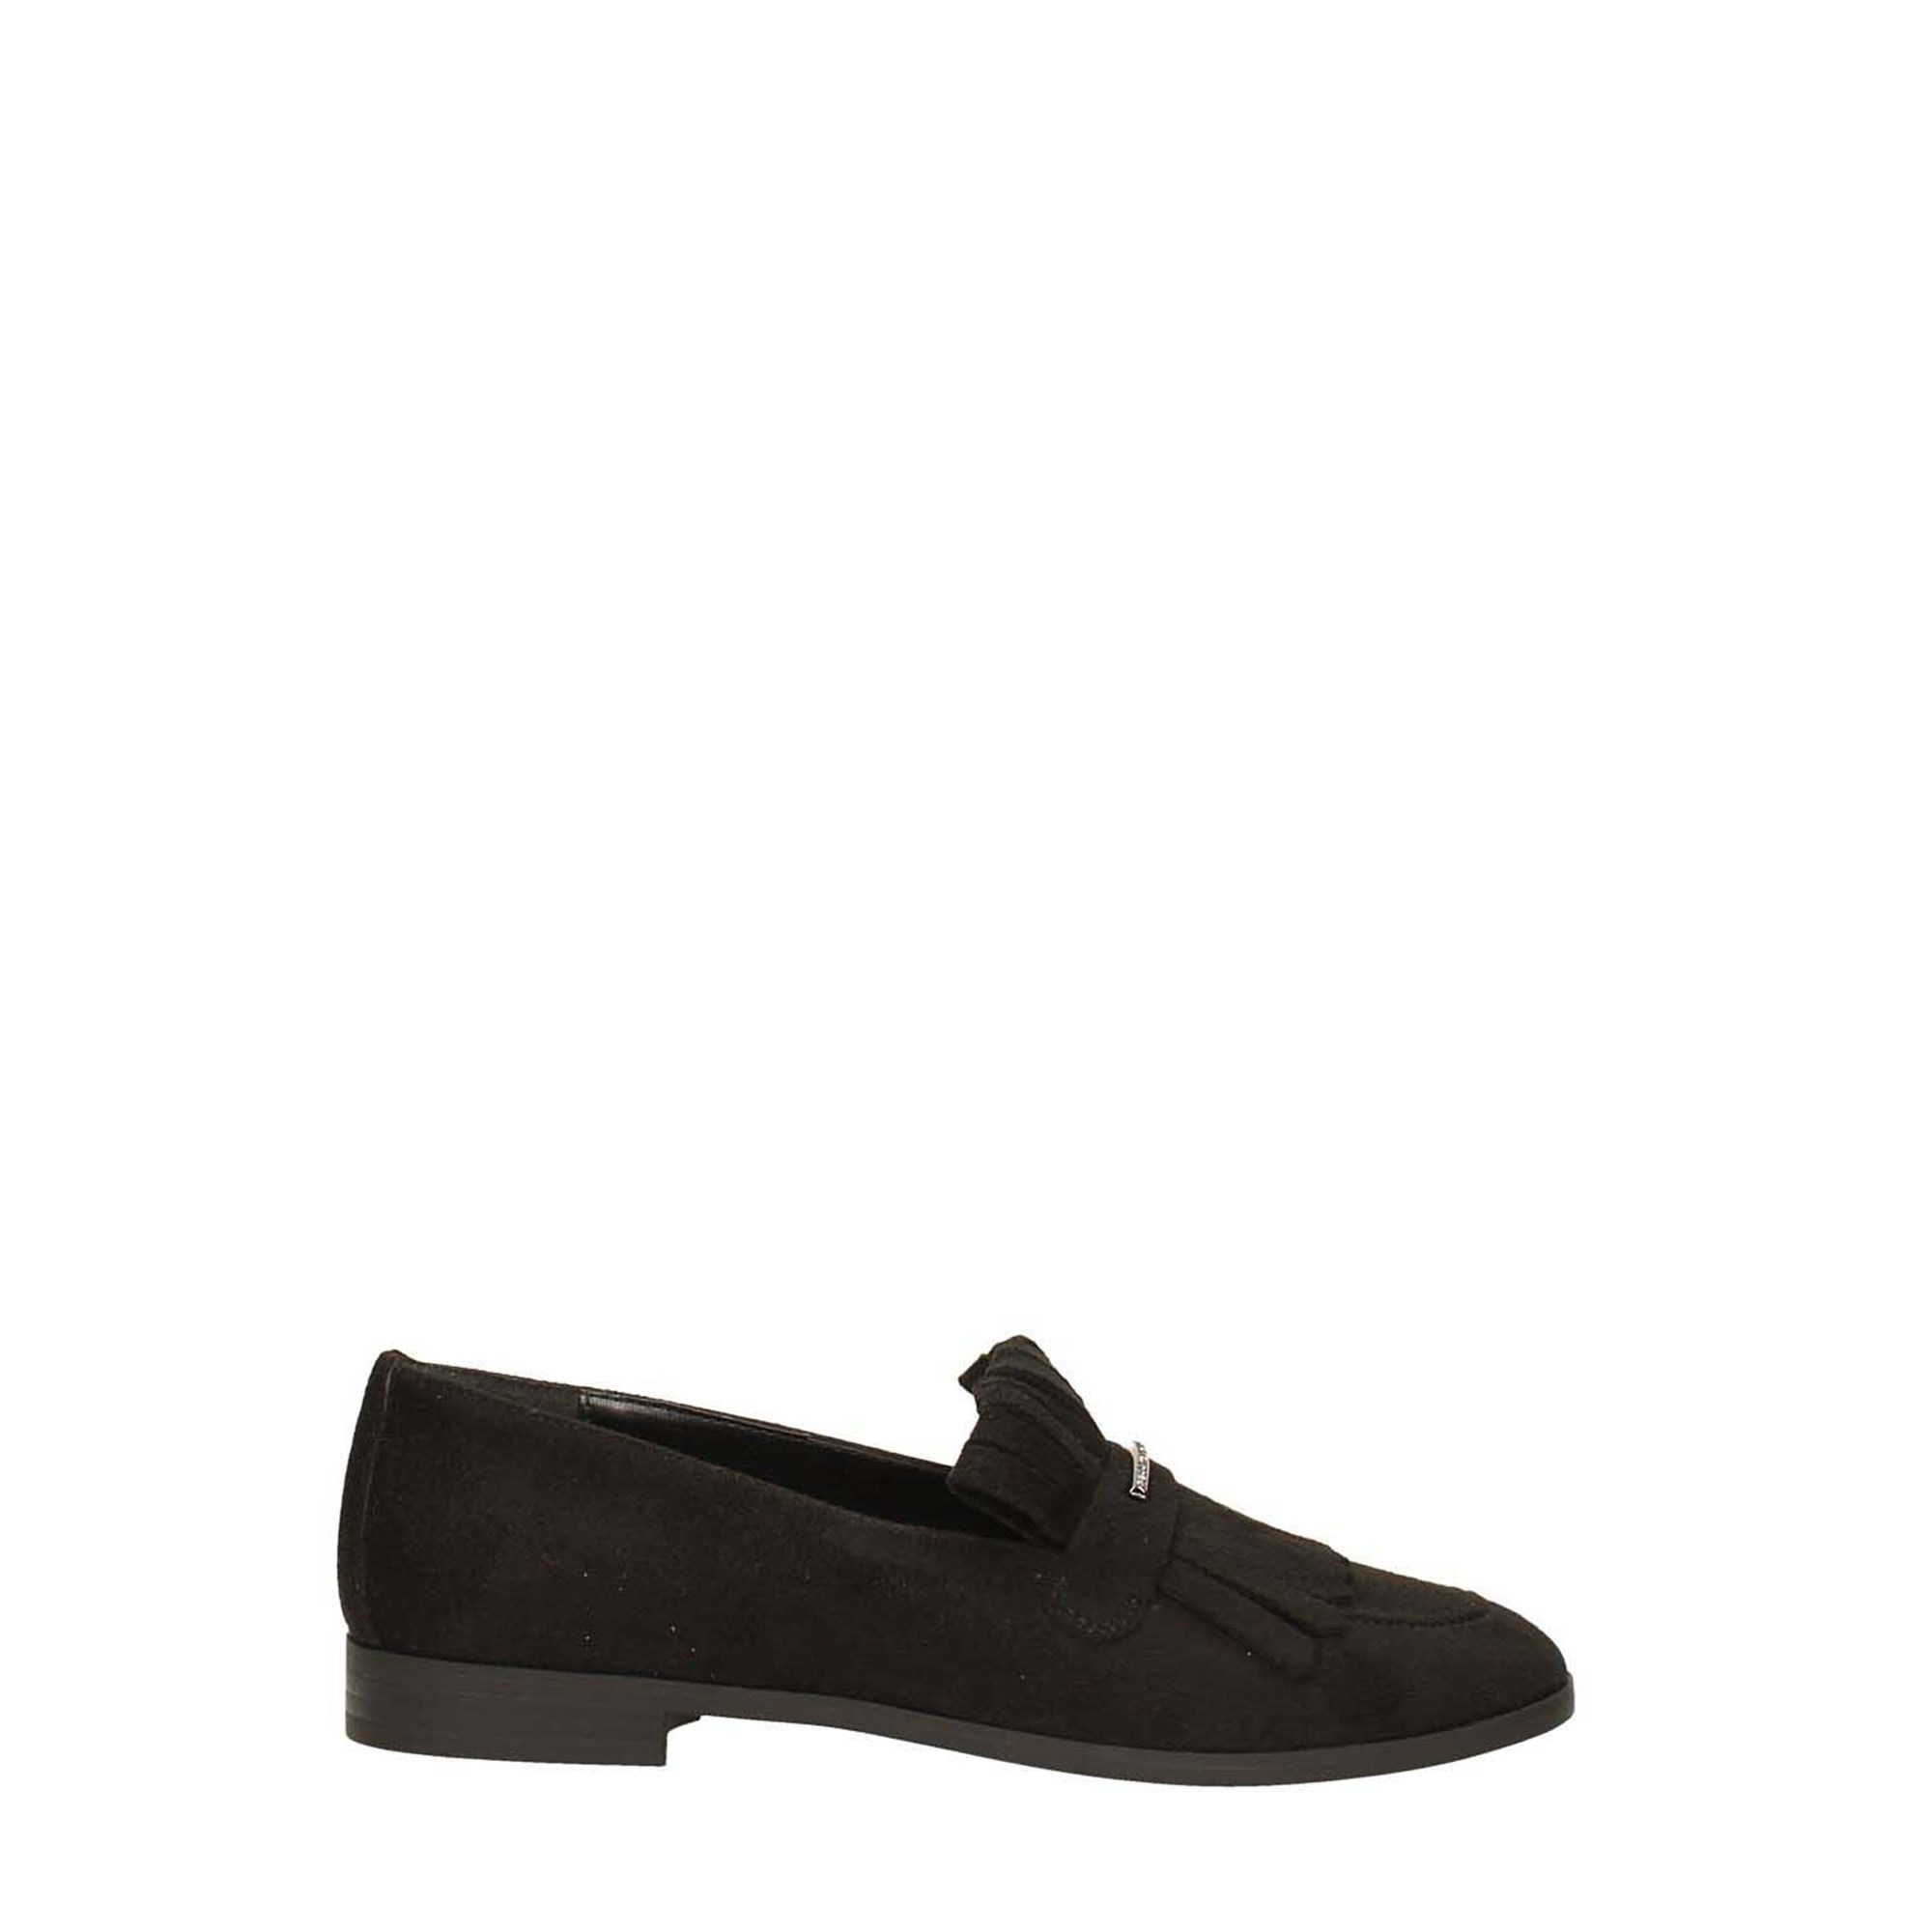 Tata Italia Shoes Woman Mocassini 2272C-1A-Z